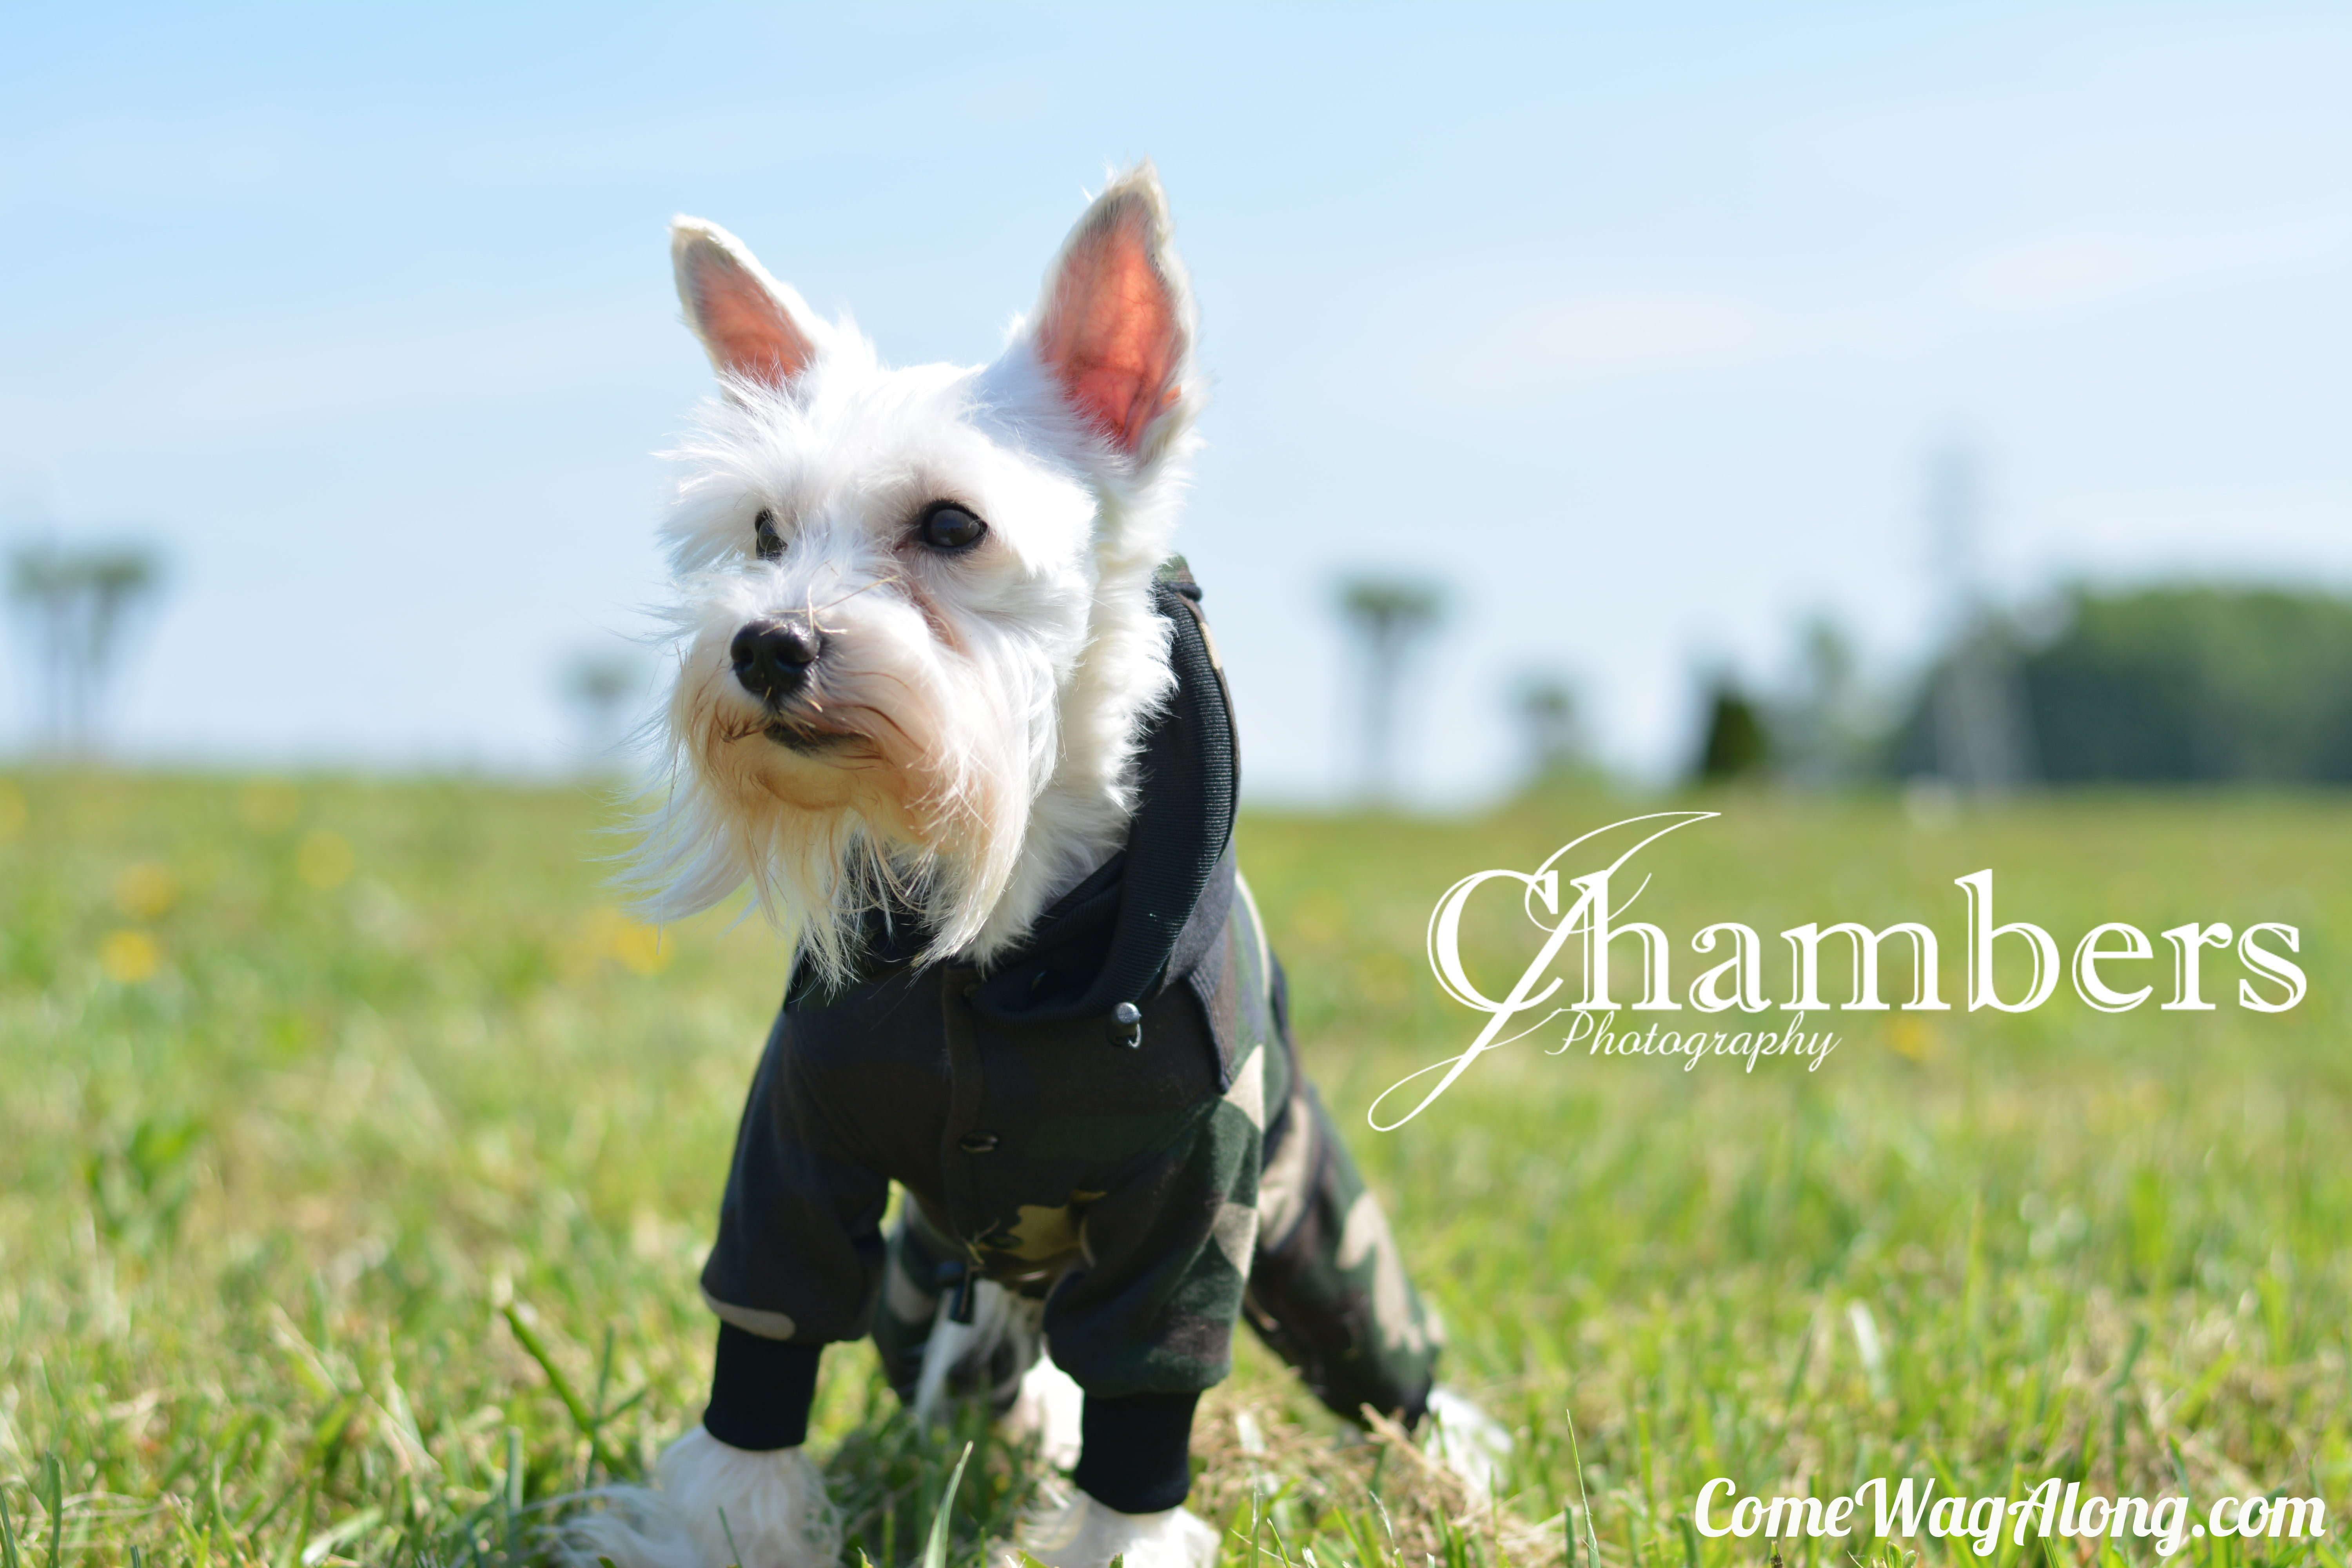 Check out our review of Theo Dog Fashion on ComeWagAlong.com